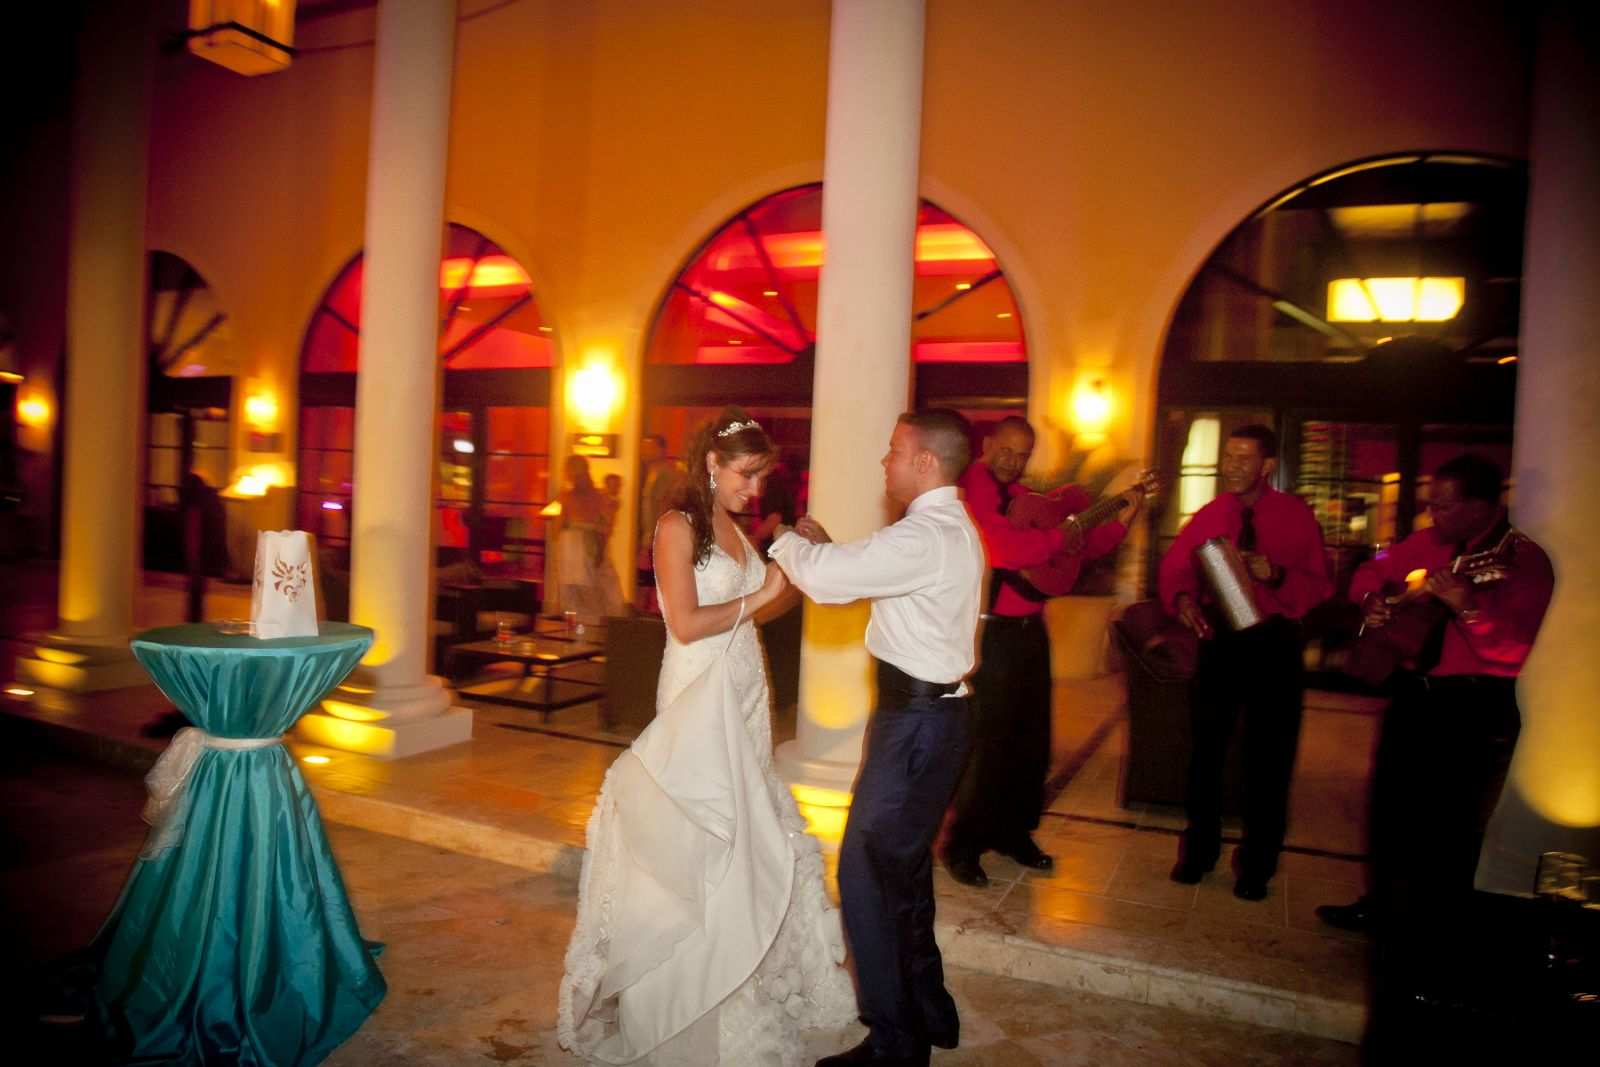 Dancing with my groom to our romantic trio live music